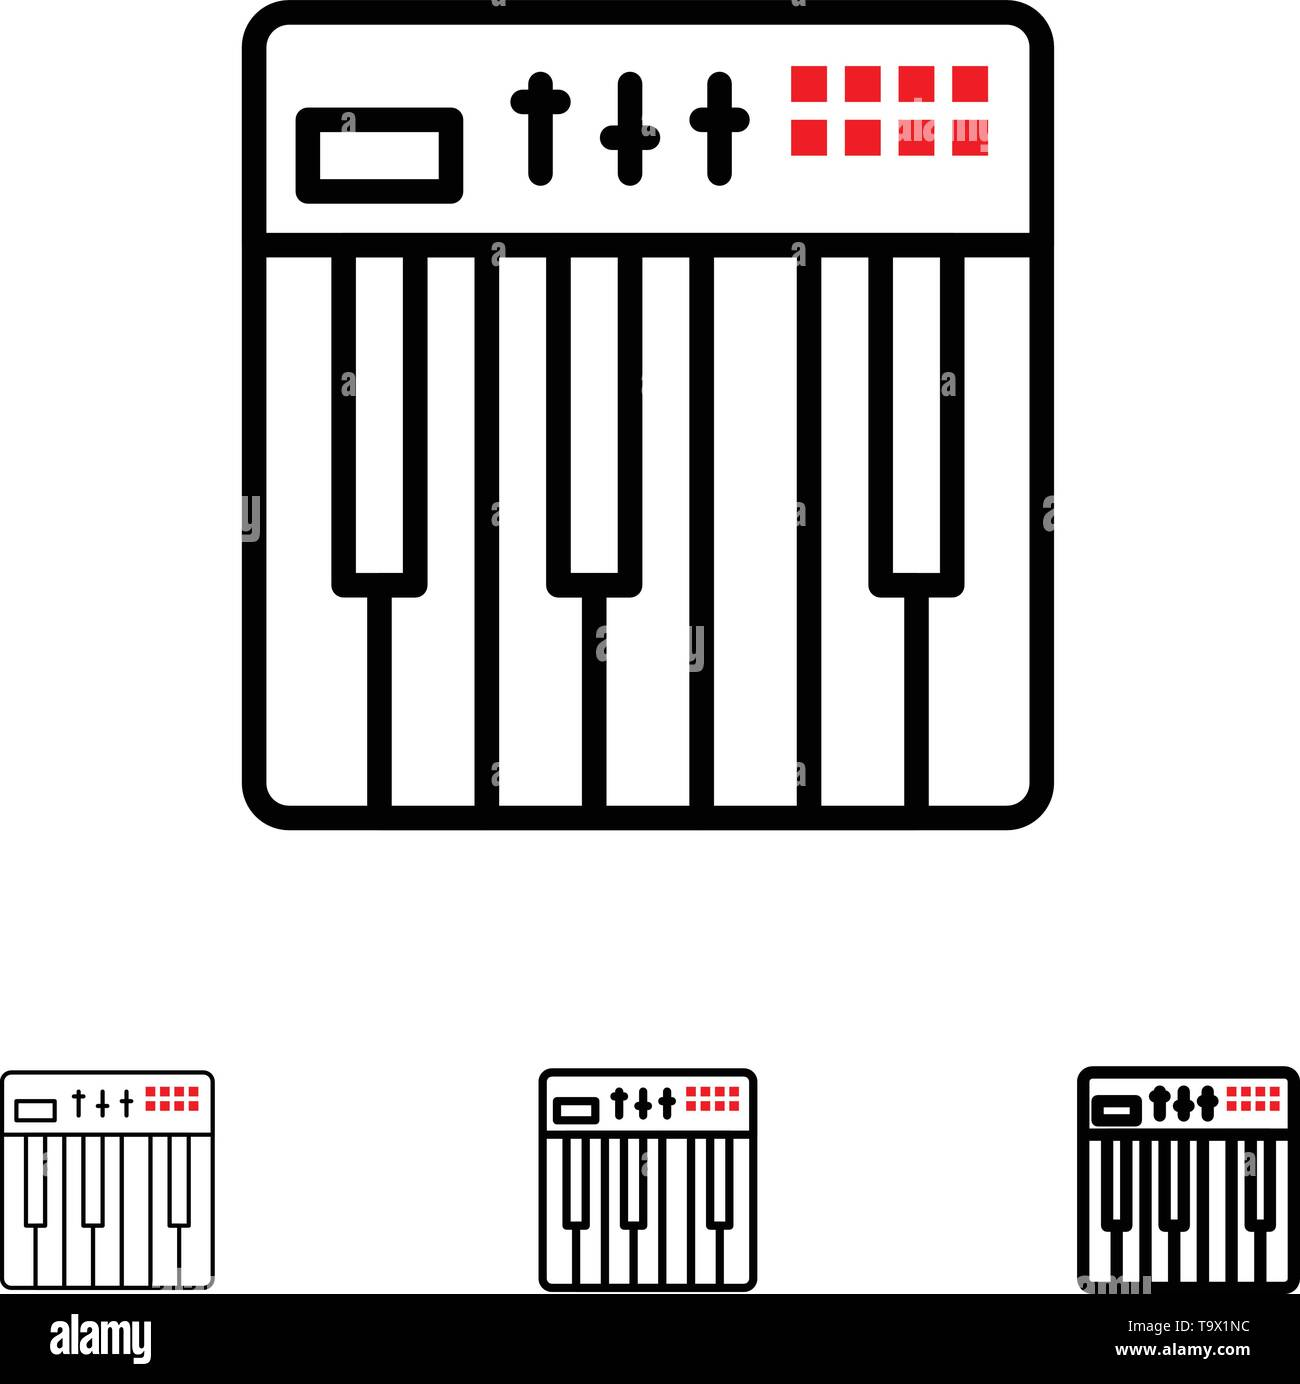 Controller, Hardware, Keyboard, Midi, Music Bold and thin black line icon set - Stock Image